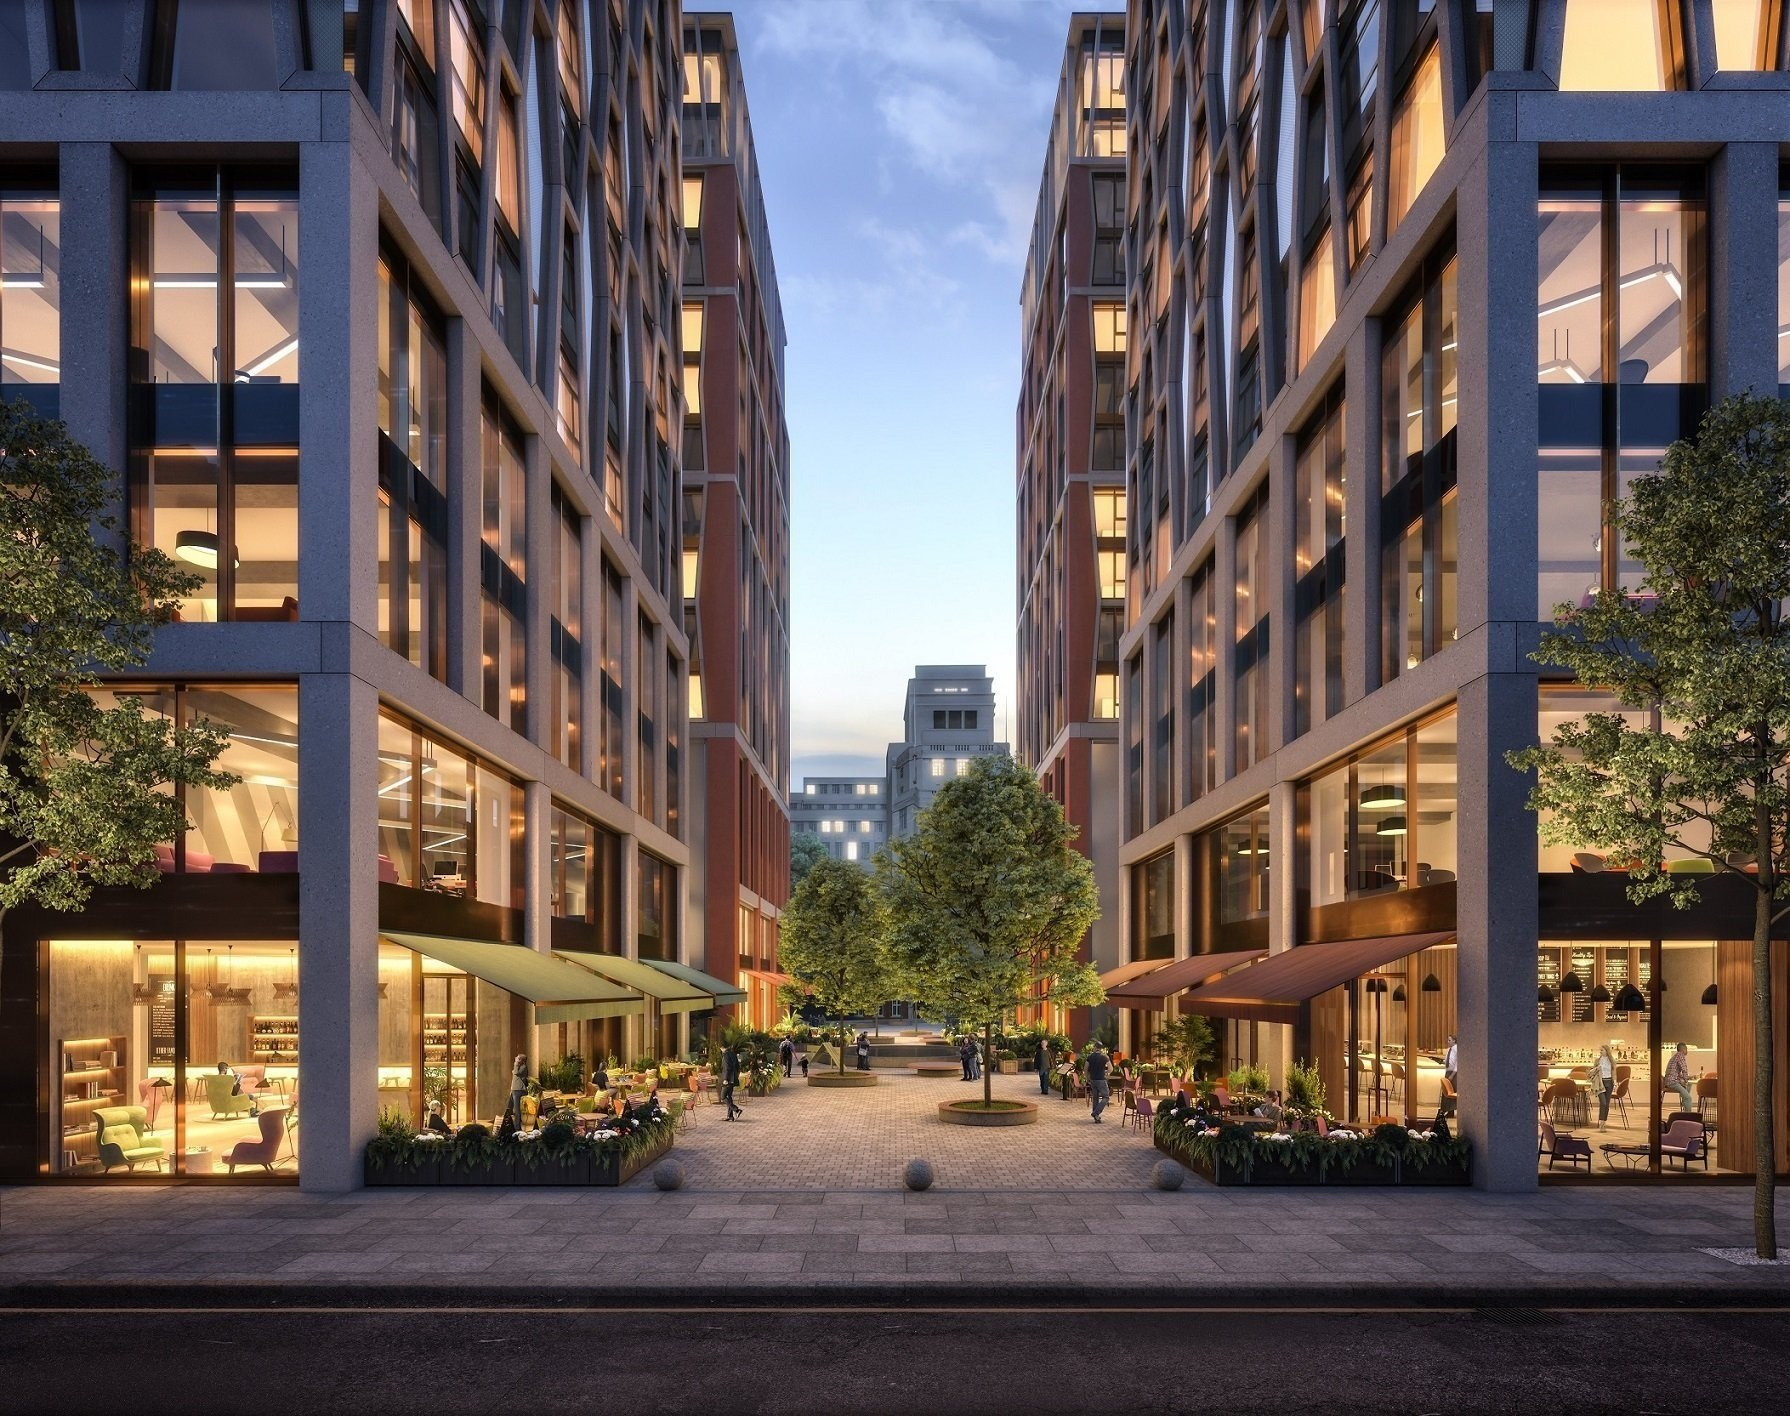 An artist's impression of The Broadway at New Scotland Yard in London.